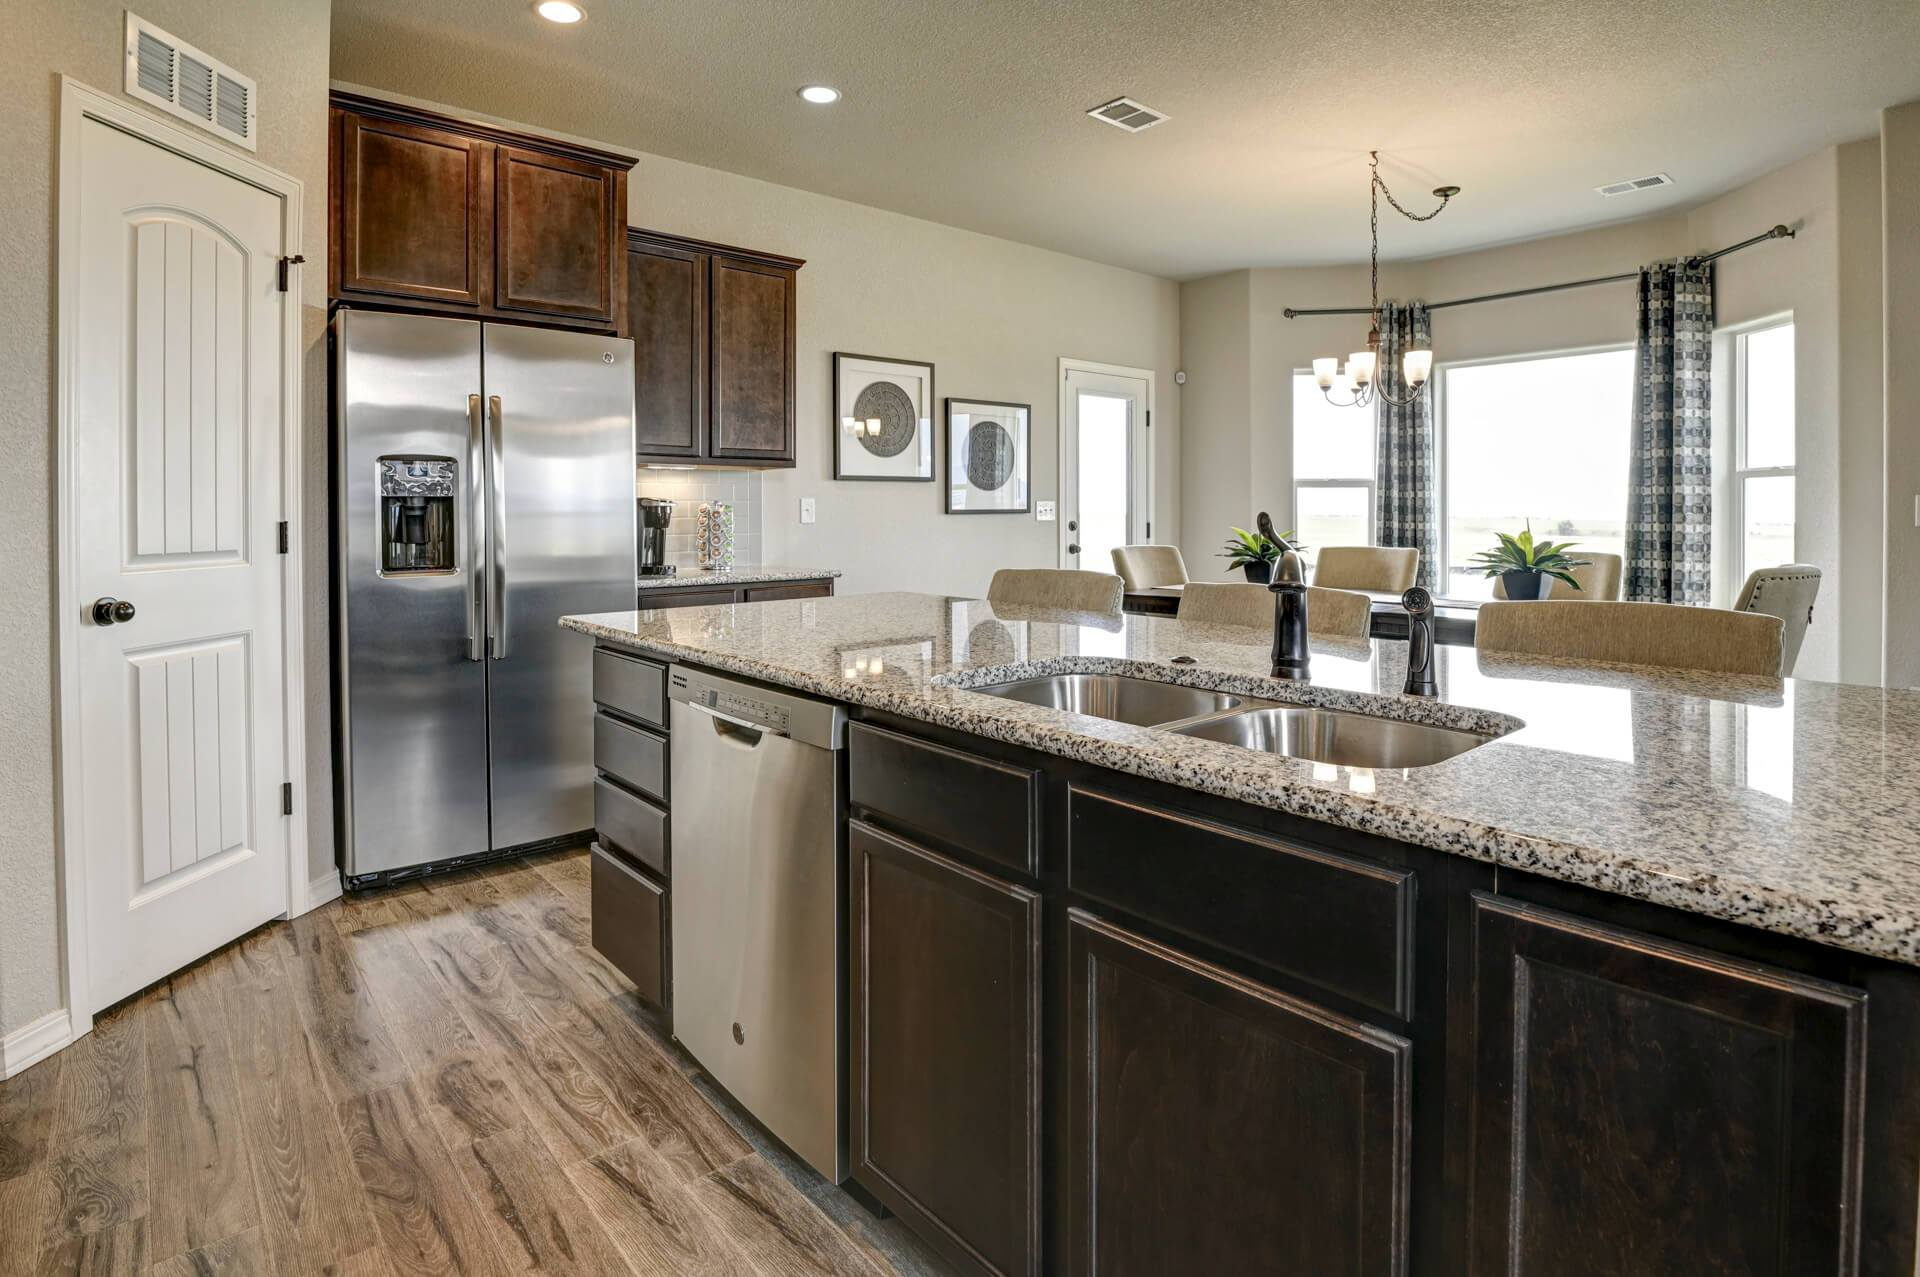 Kitchen featured in The Charleston By Challenger Homes in Greeley, CO